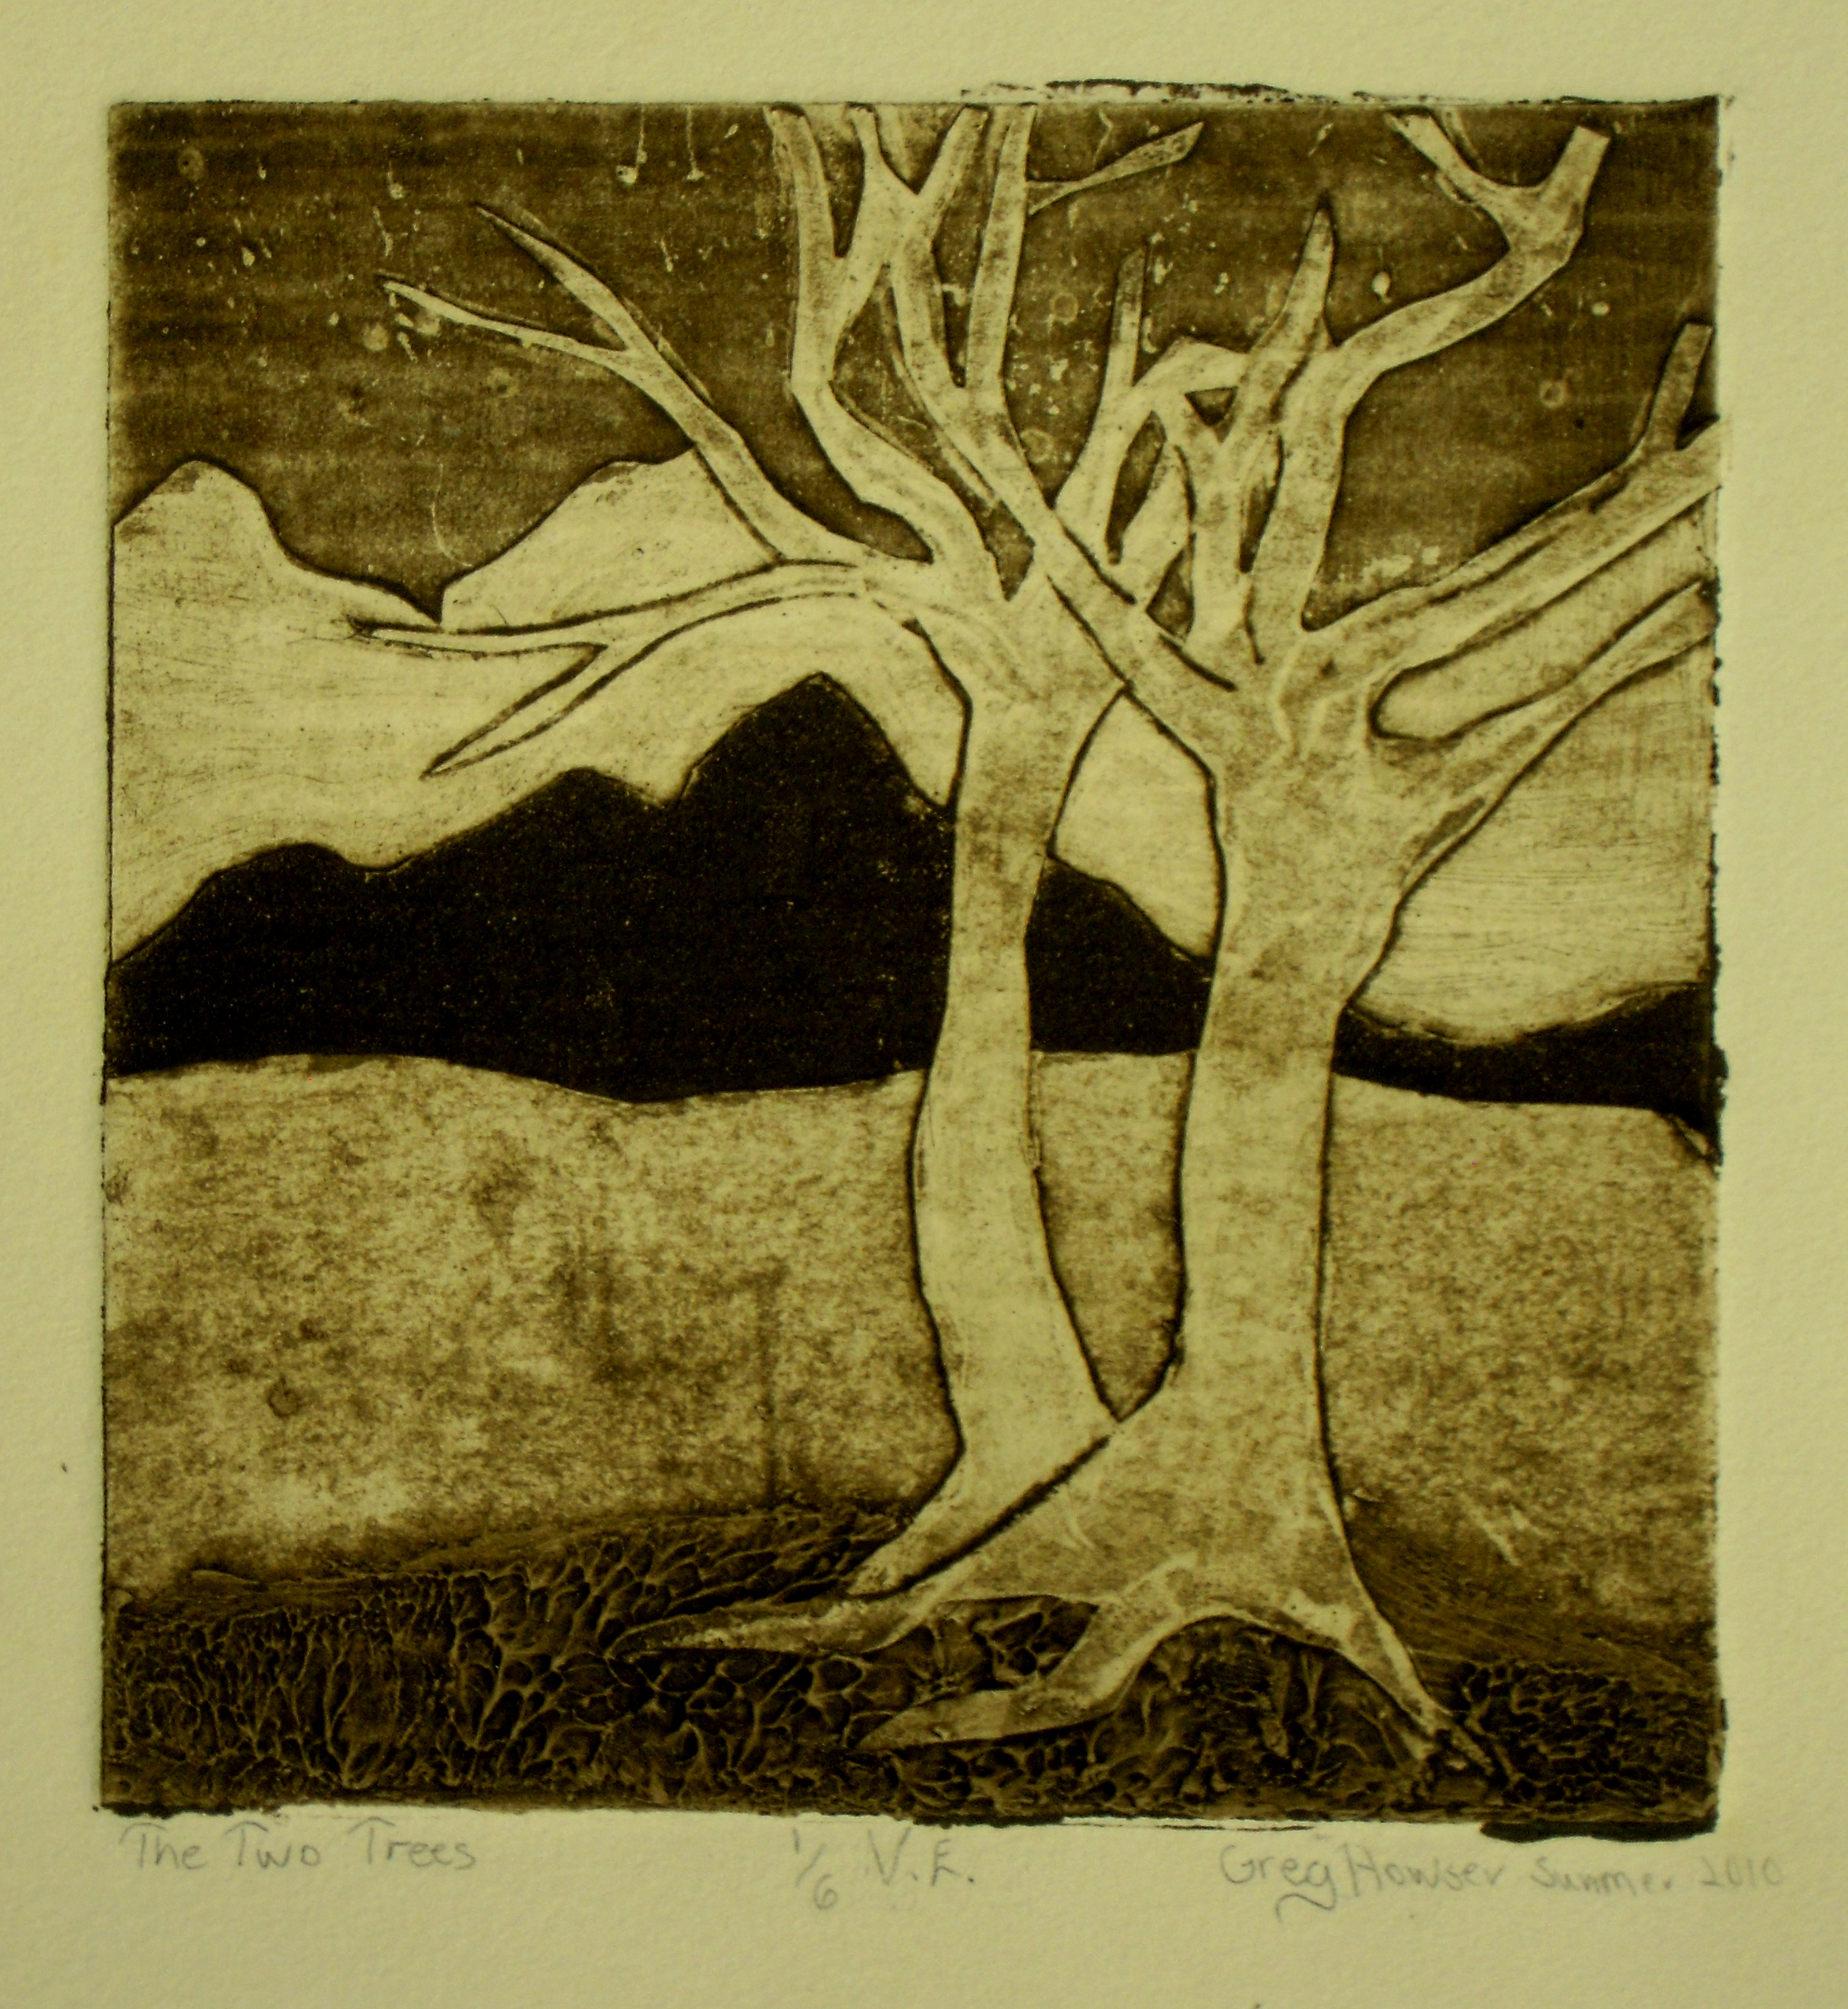 Collagraphs